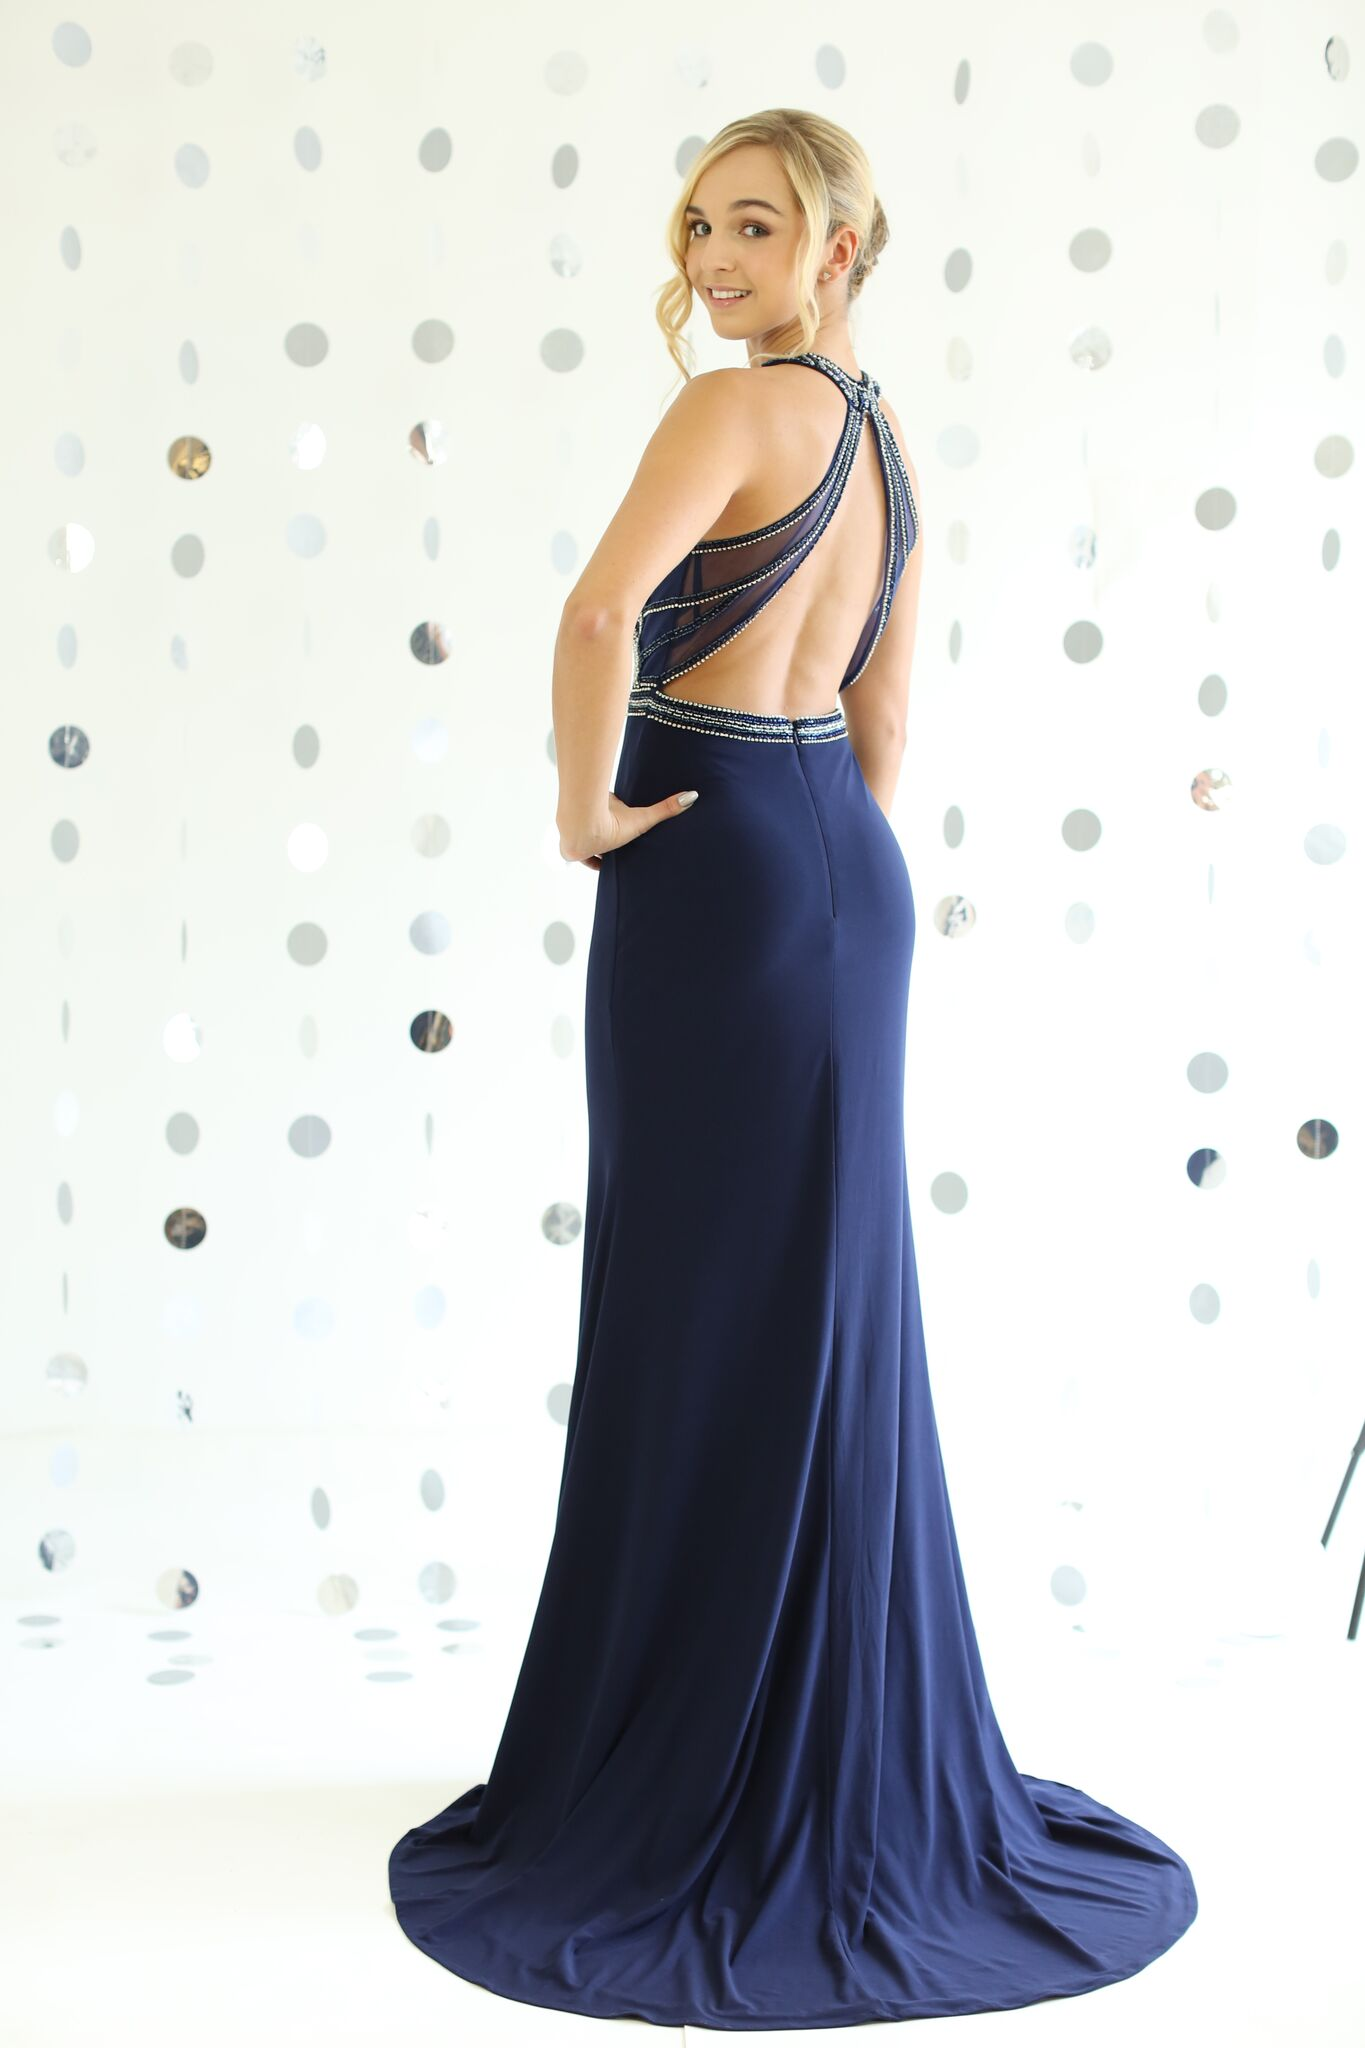 prom dresses wholesale.co.uk